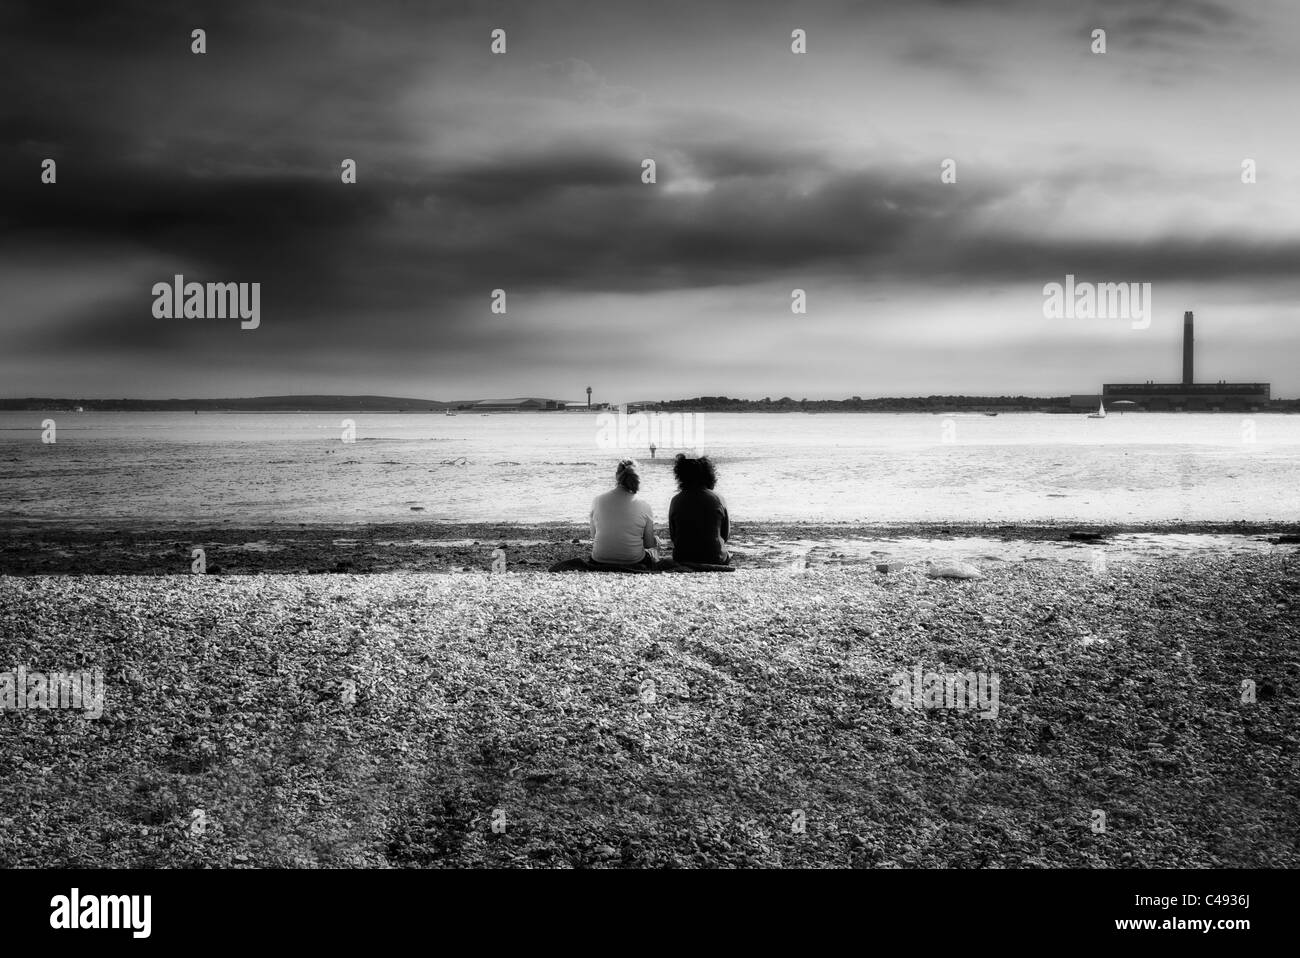 people sitting on a pebble beach at low tide at southampton water UK black & white - Stock Image